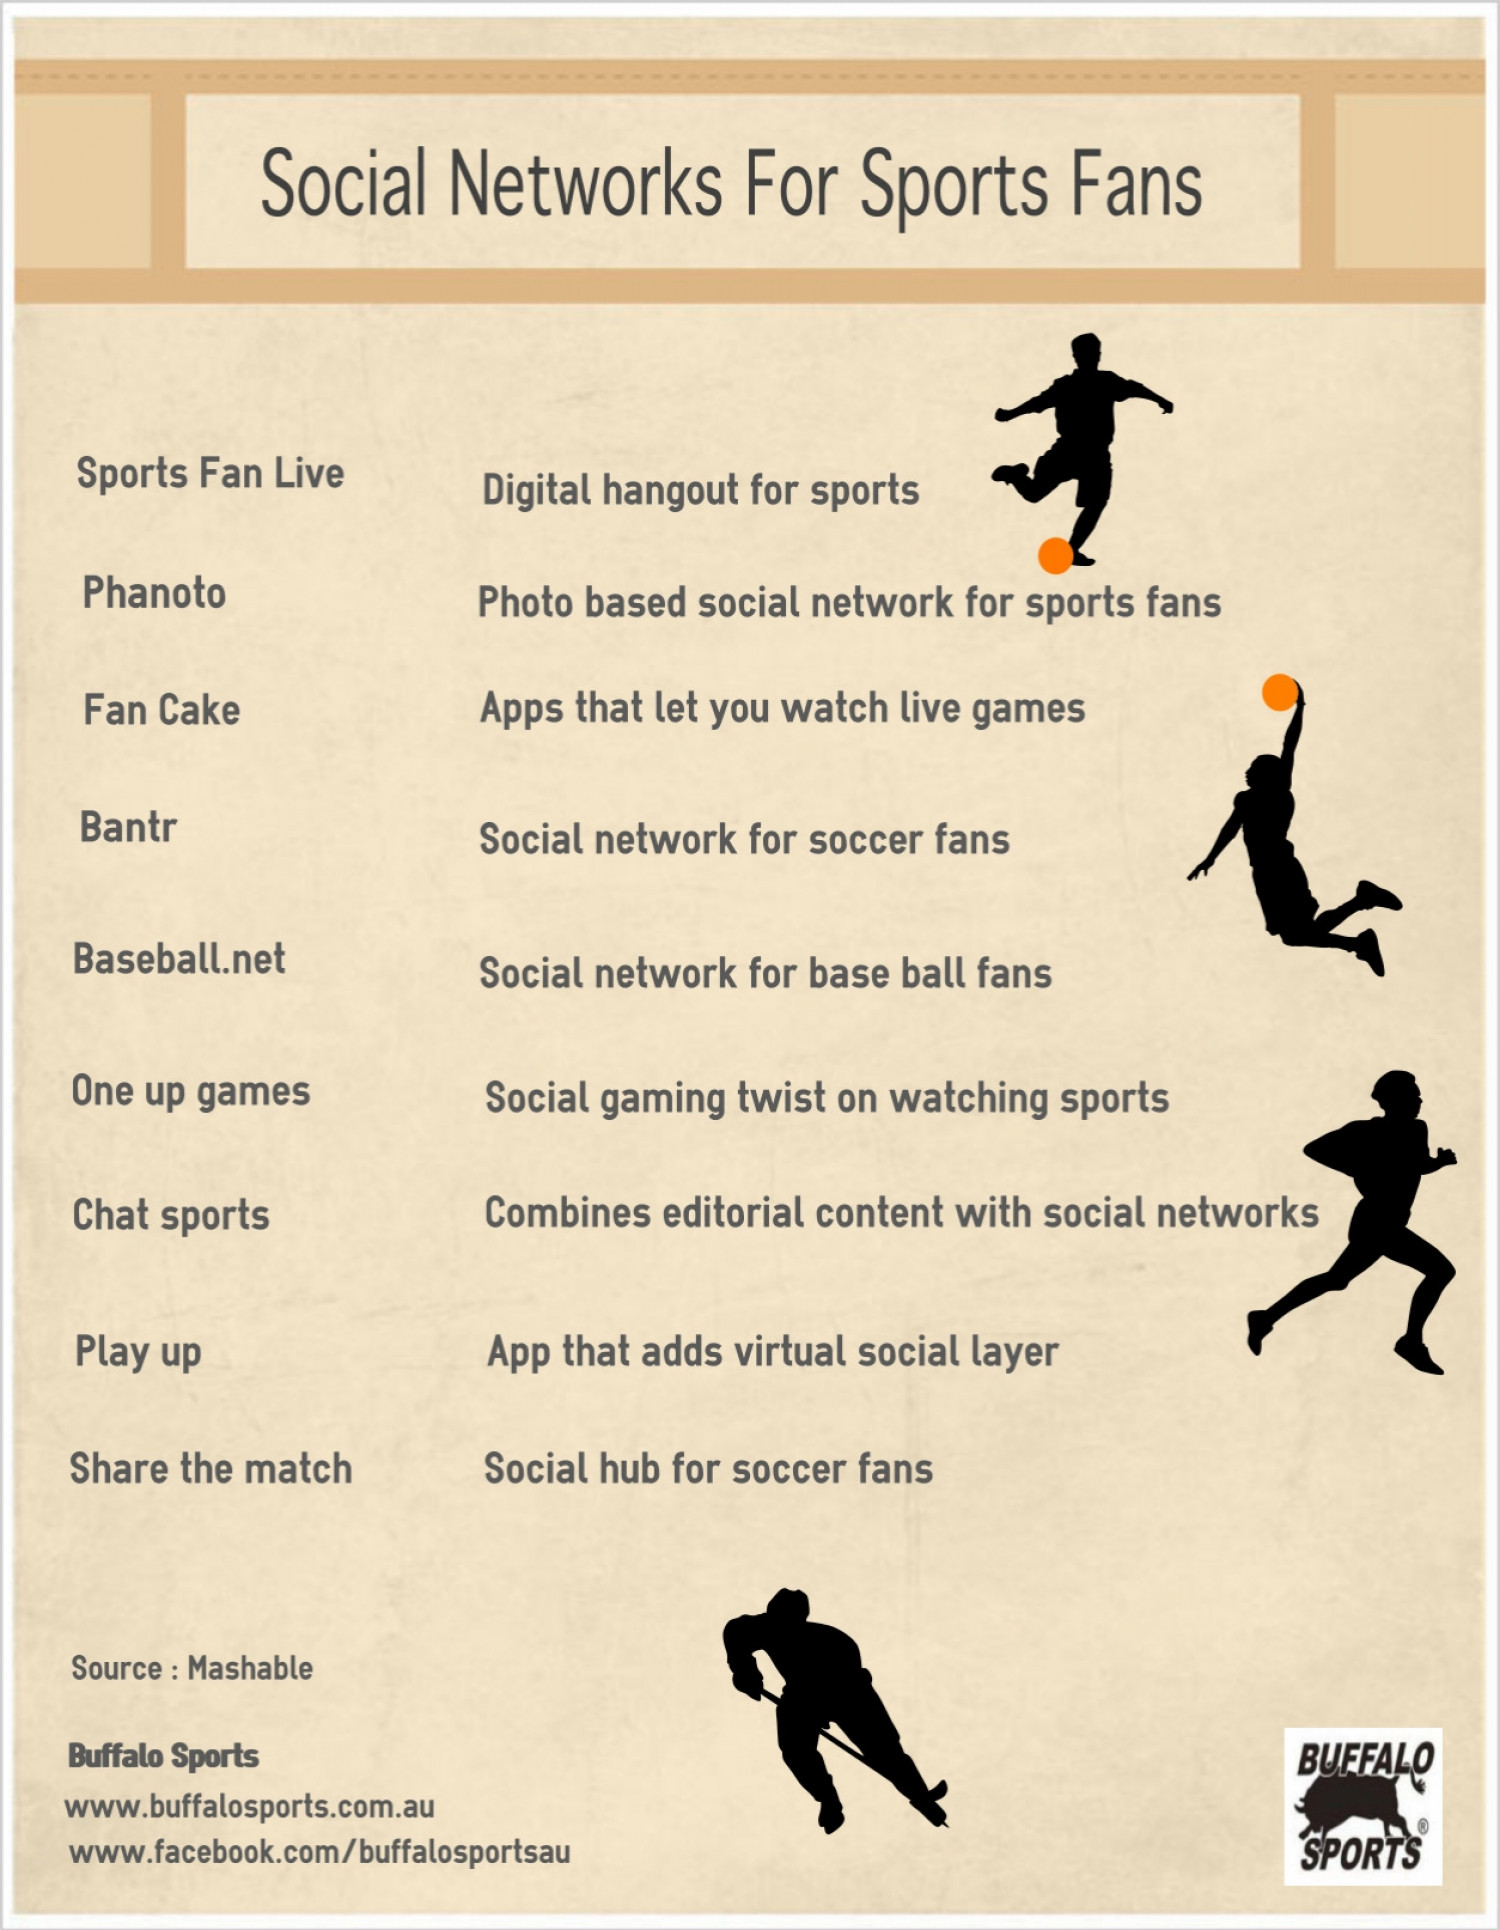 Social Networks For Sports Fans Infographic